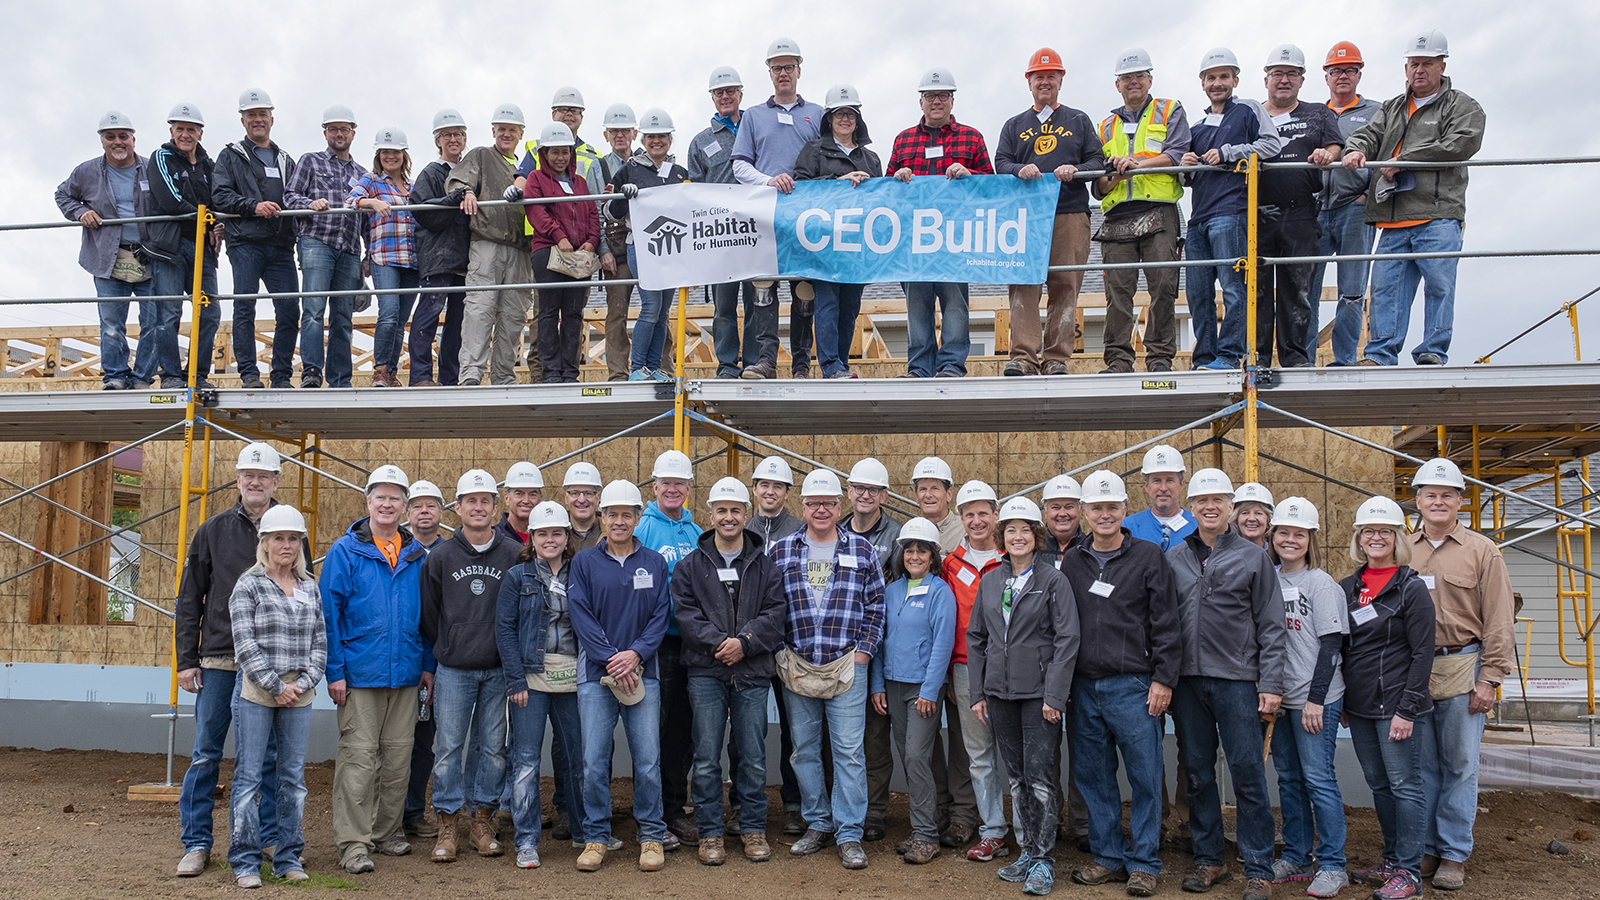 CEO Build group photo